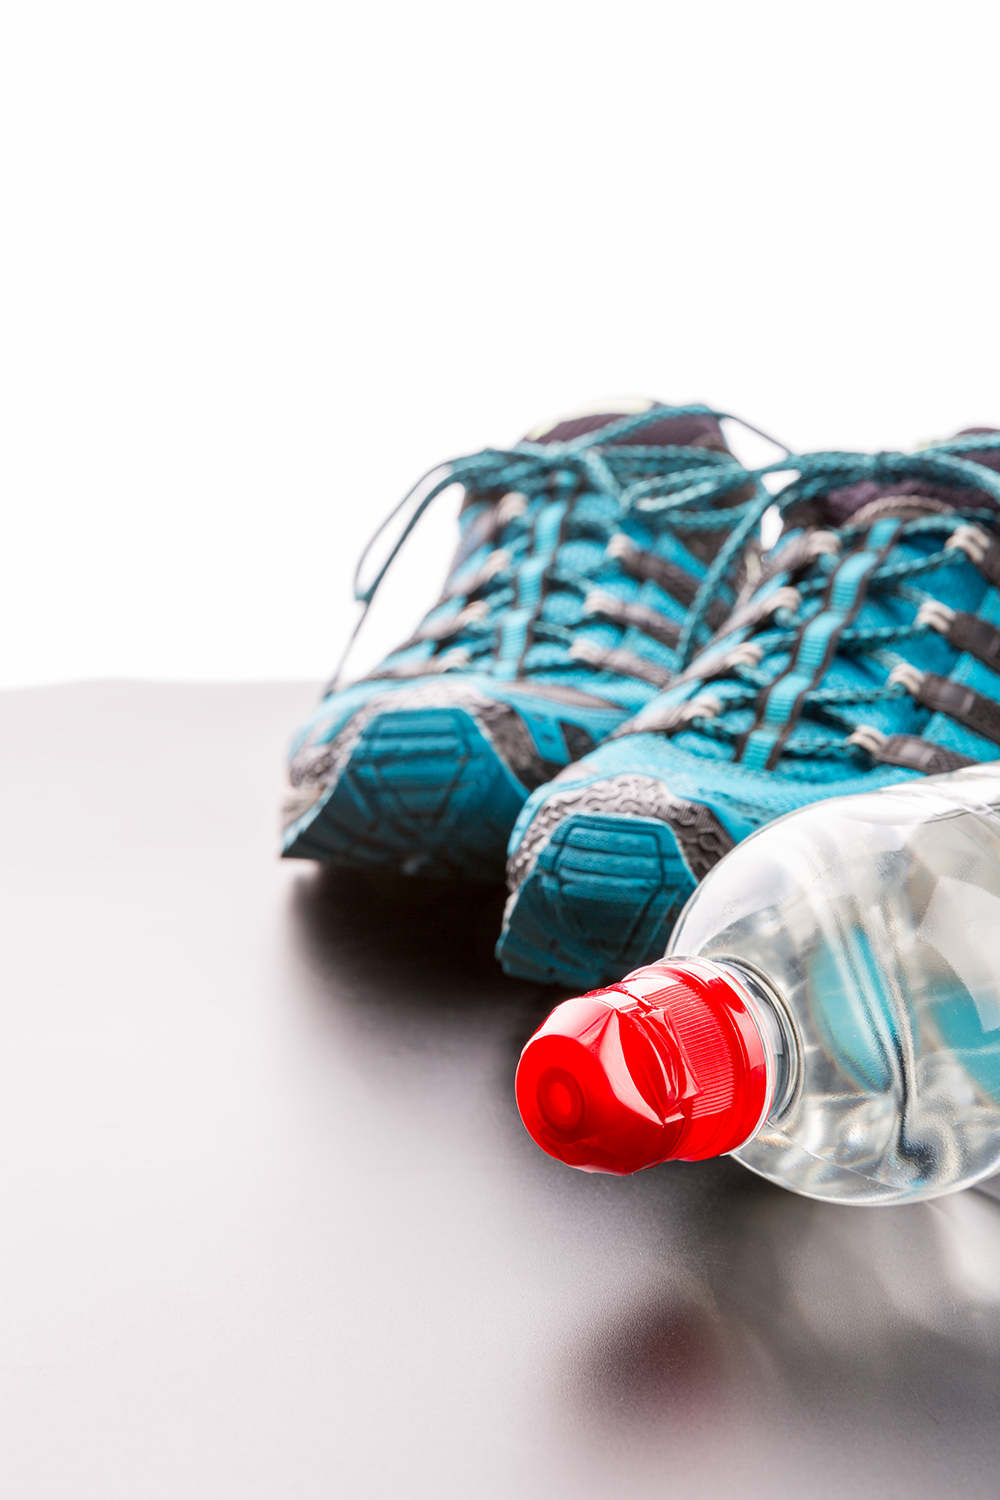 Fitness shoes and bottled water